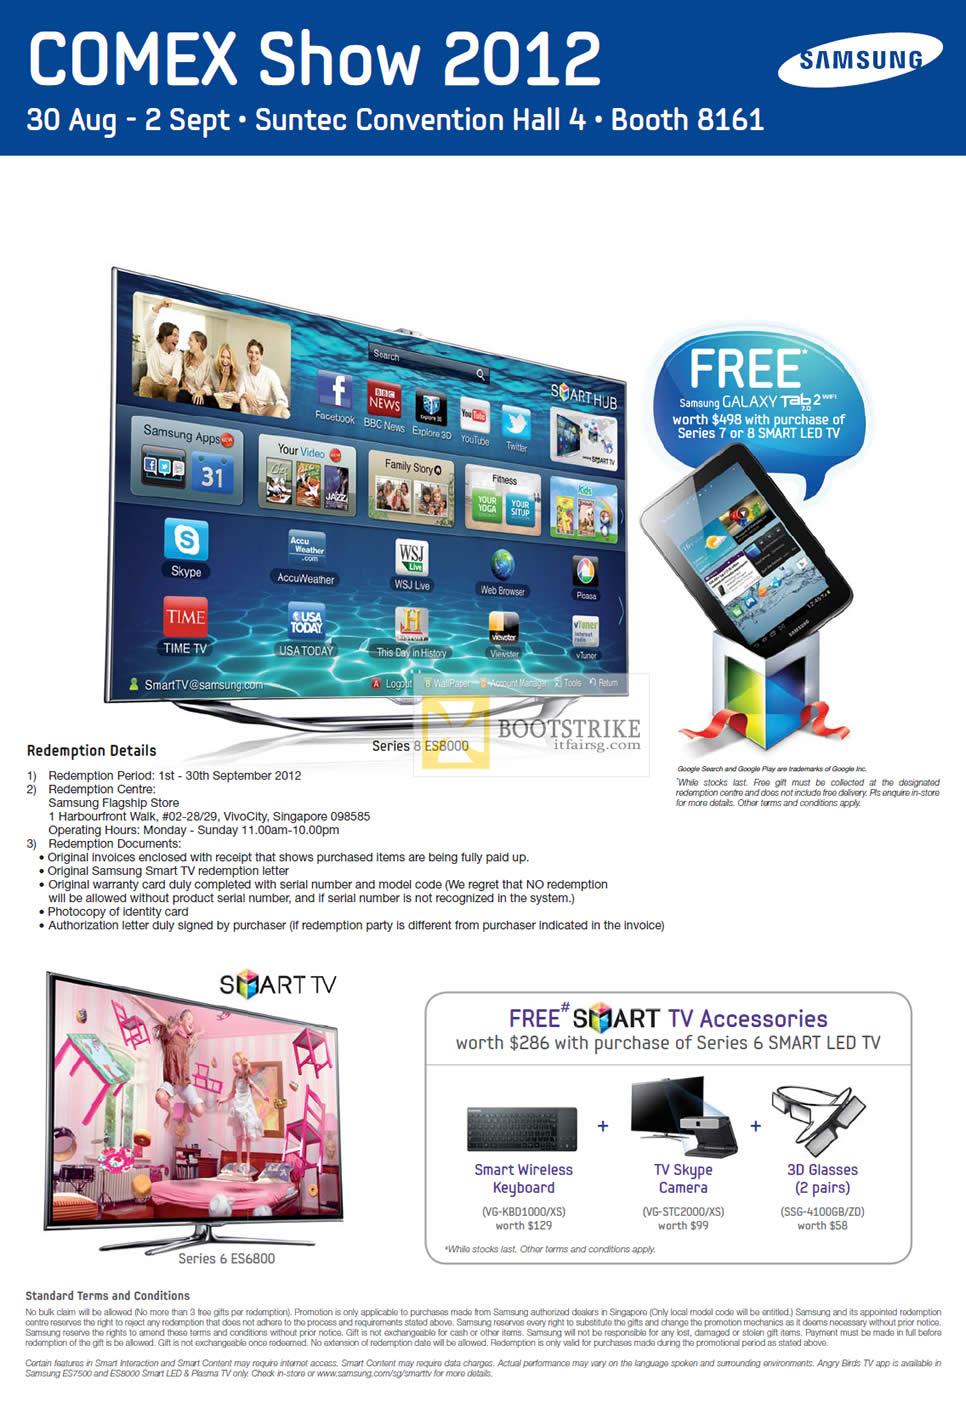 COMEX 2012 price list image brochure of Audio House Samsung Smart TV Series 6 ES6800